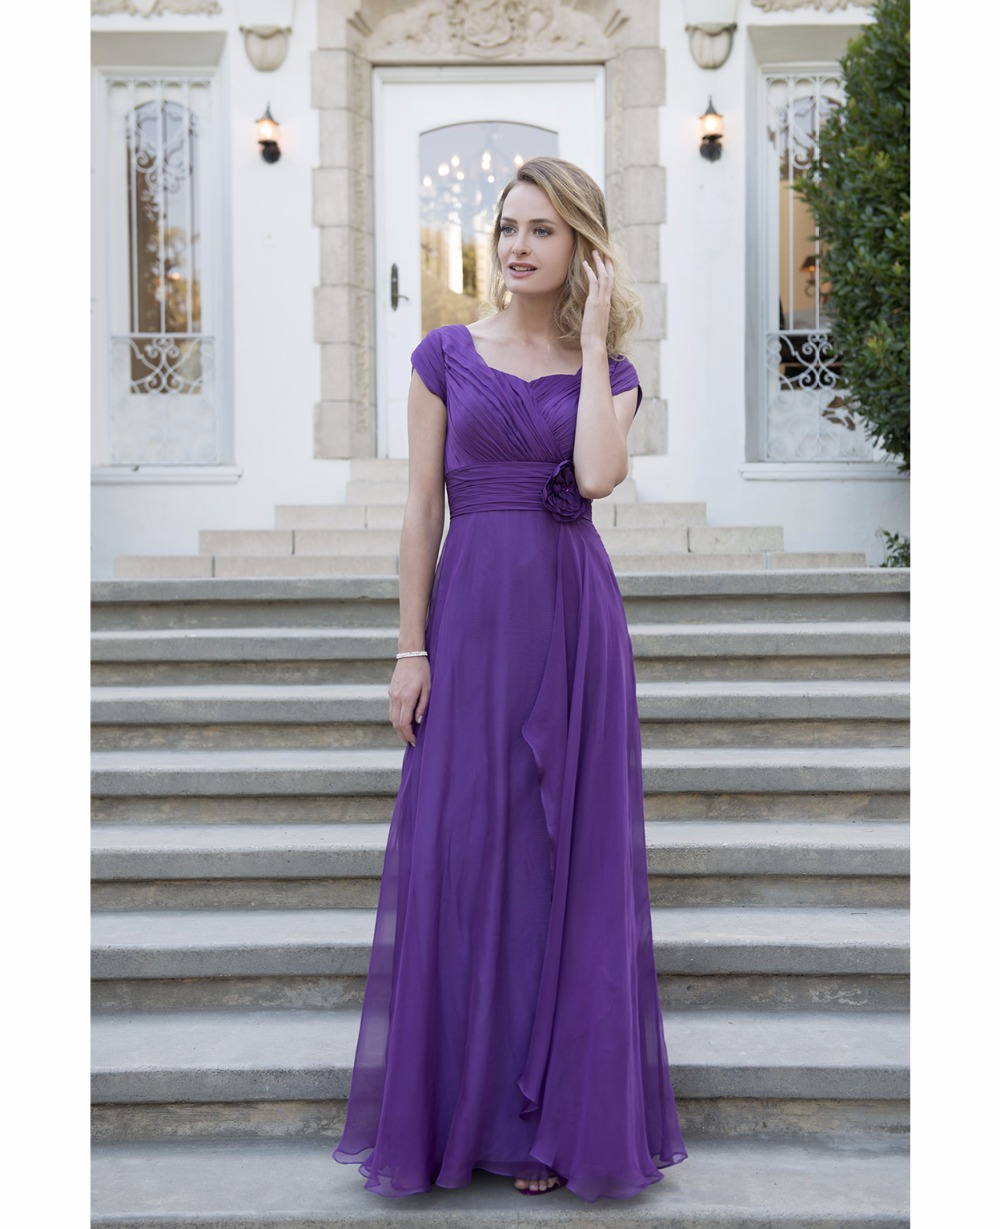 Purple chiffon long modest bridesmaid dresses 2017 with cap purple chiffon long modest bridesmaid dresses 2017 with cap sleeves pleats flowers floor length country bridesmaids gowns custom in bridesmaid dresses from ombrellifo Image collections